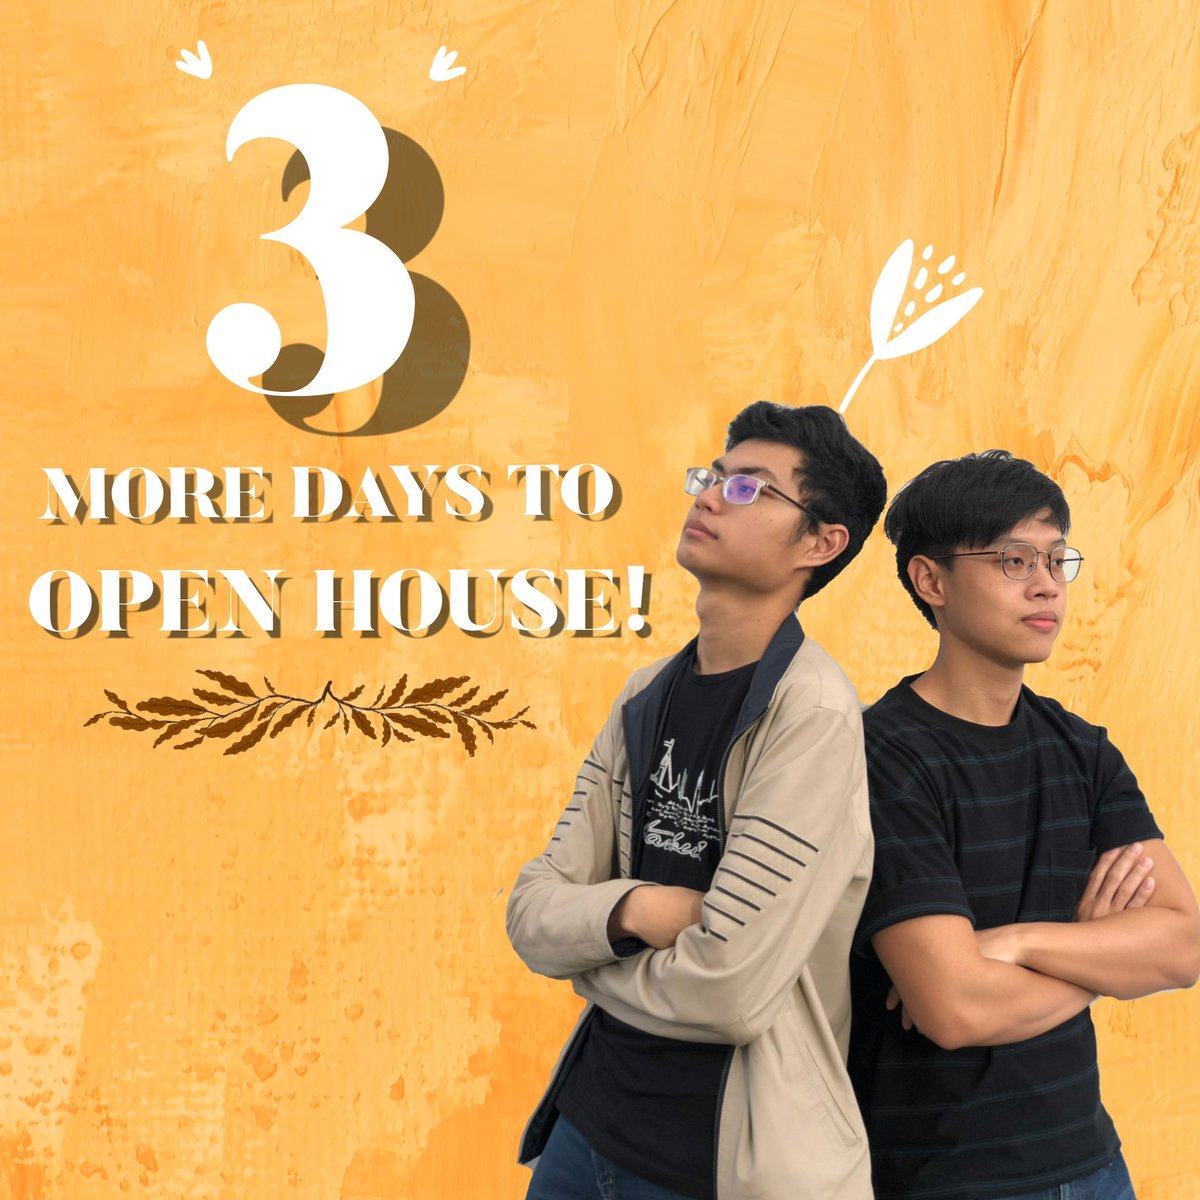 Open House will be happening in 3 days time so stay tuned for any upcoming updates! 🧐Check out our other social medias as well for more updates!👋 #OHmyRP #OHRP20 #DiscoverRP https://t.co/3lDUuof0VW